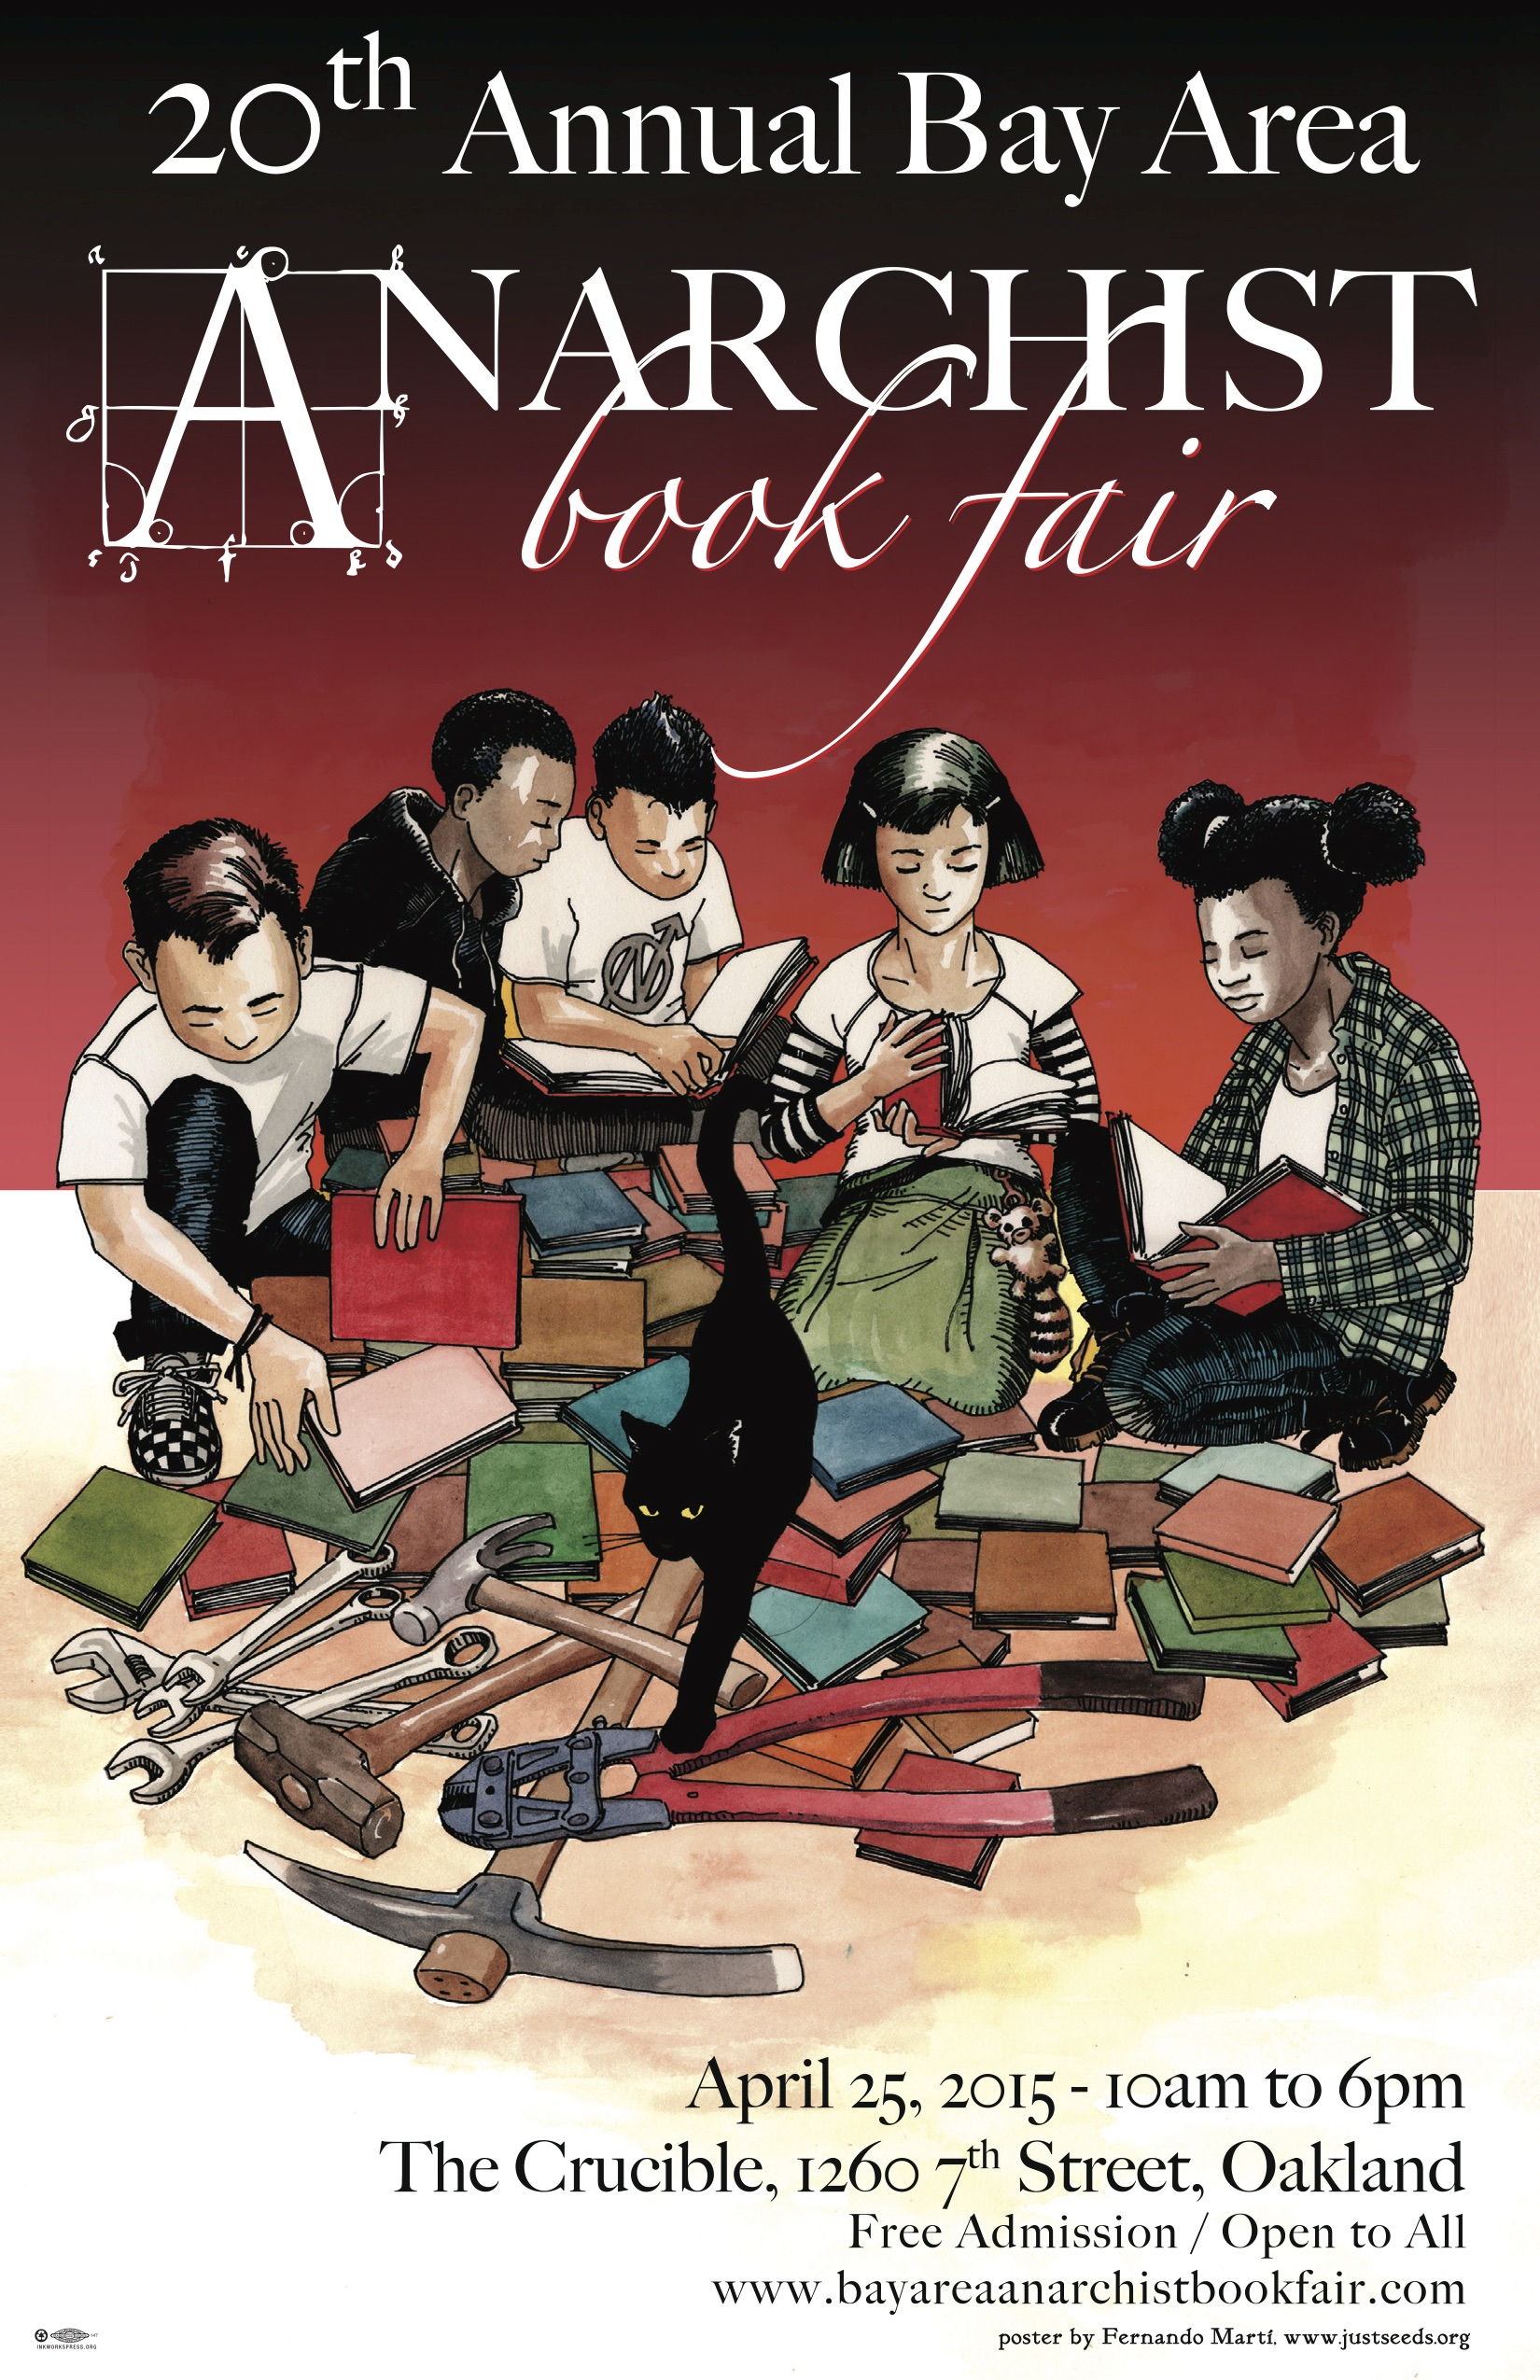 2015 Book Fair Posters & Postcards Now Available!Support the Book Fair